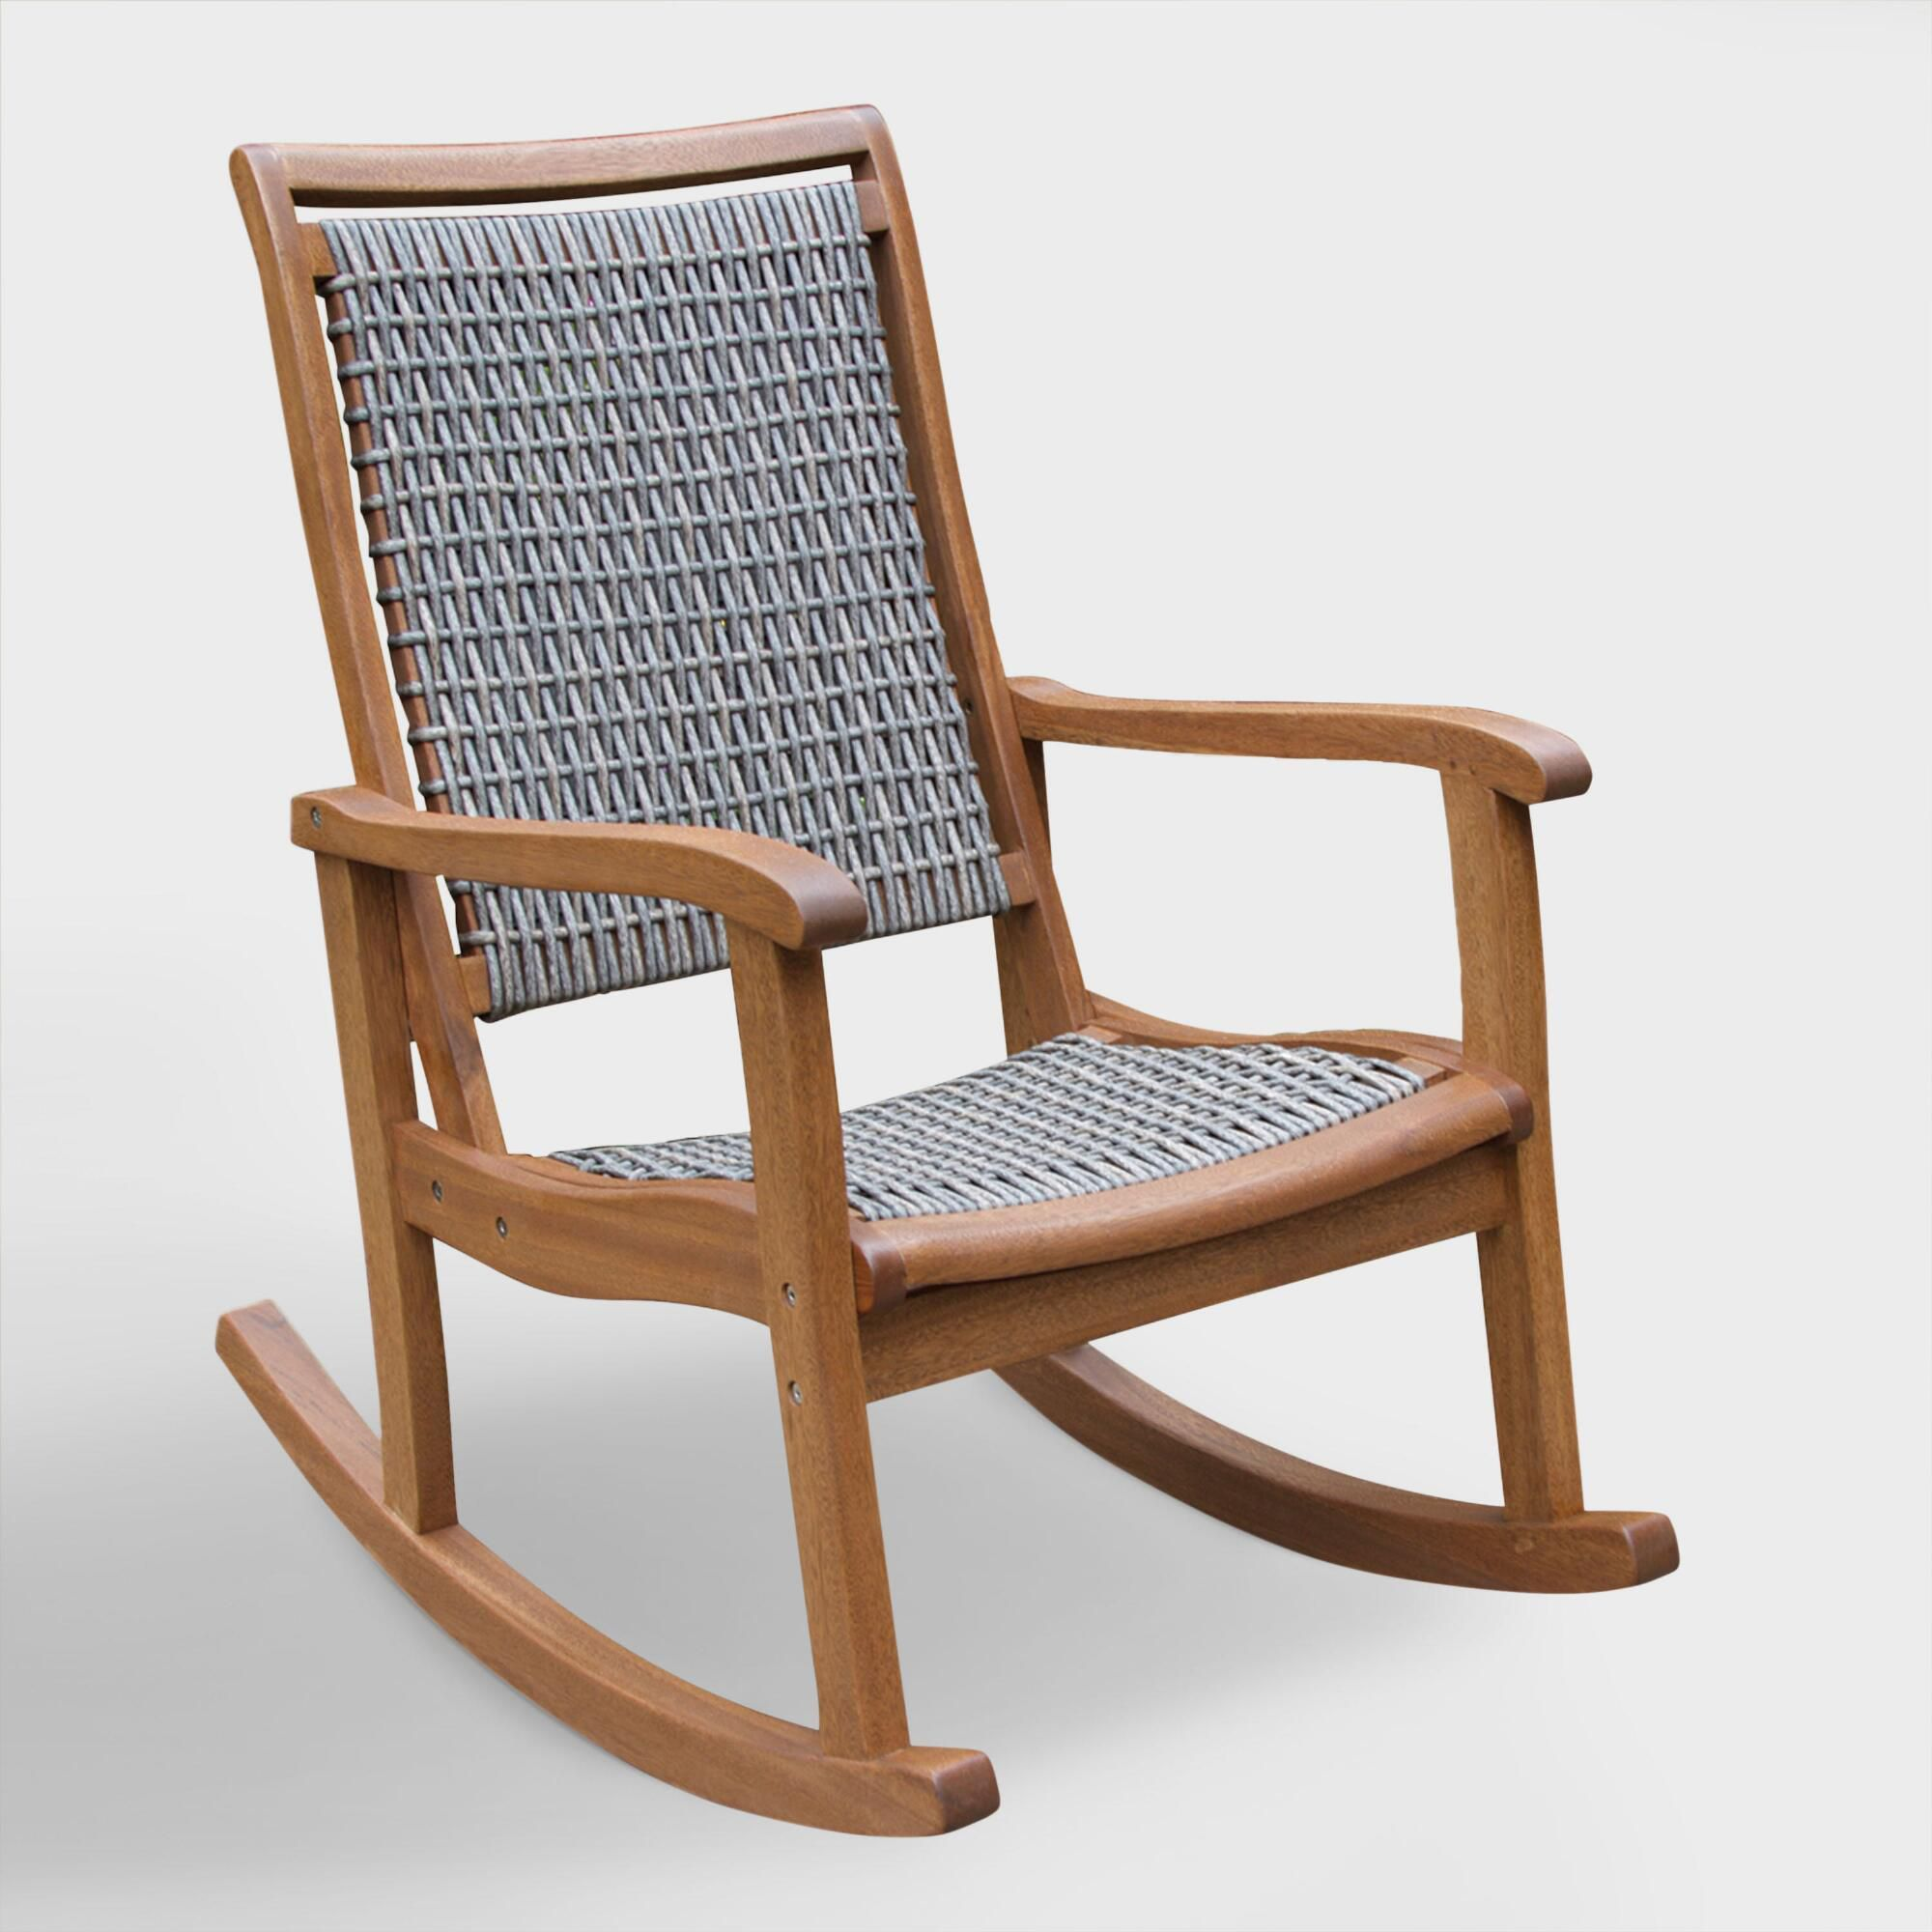 Cheap Rocking Chairs Wicker Wood All Weather Rocking Chair